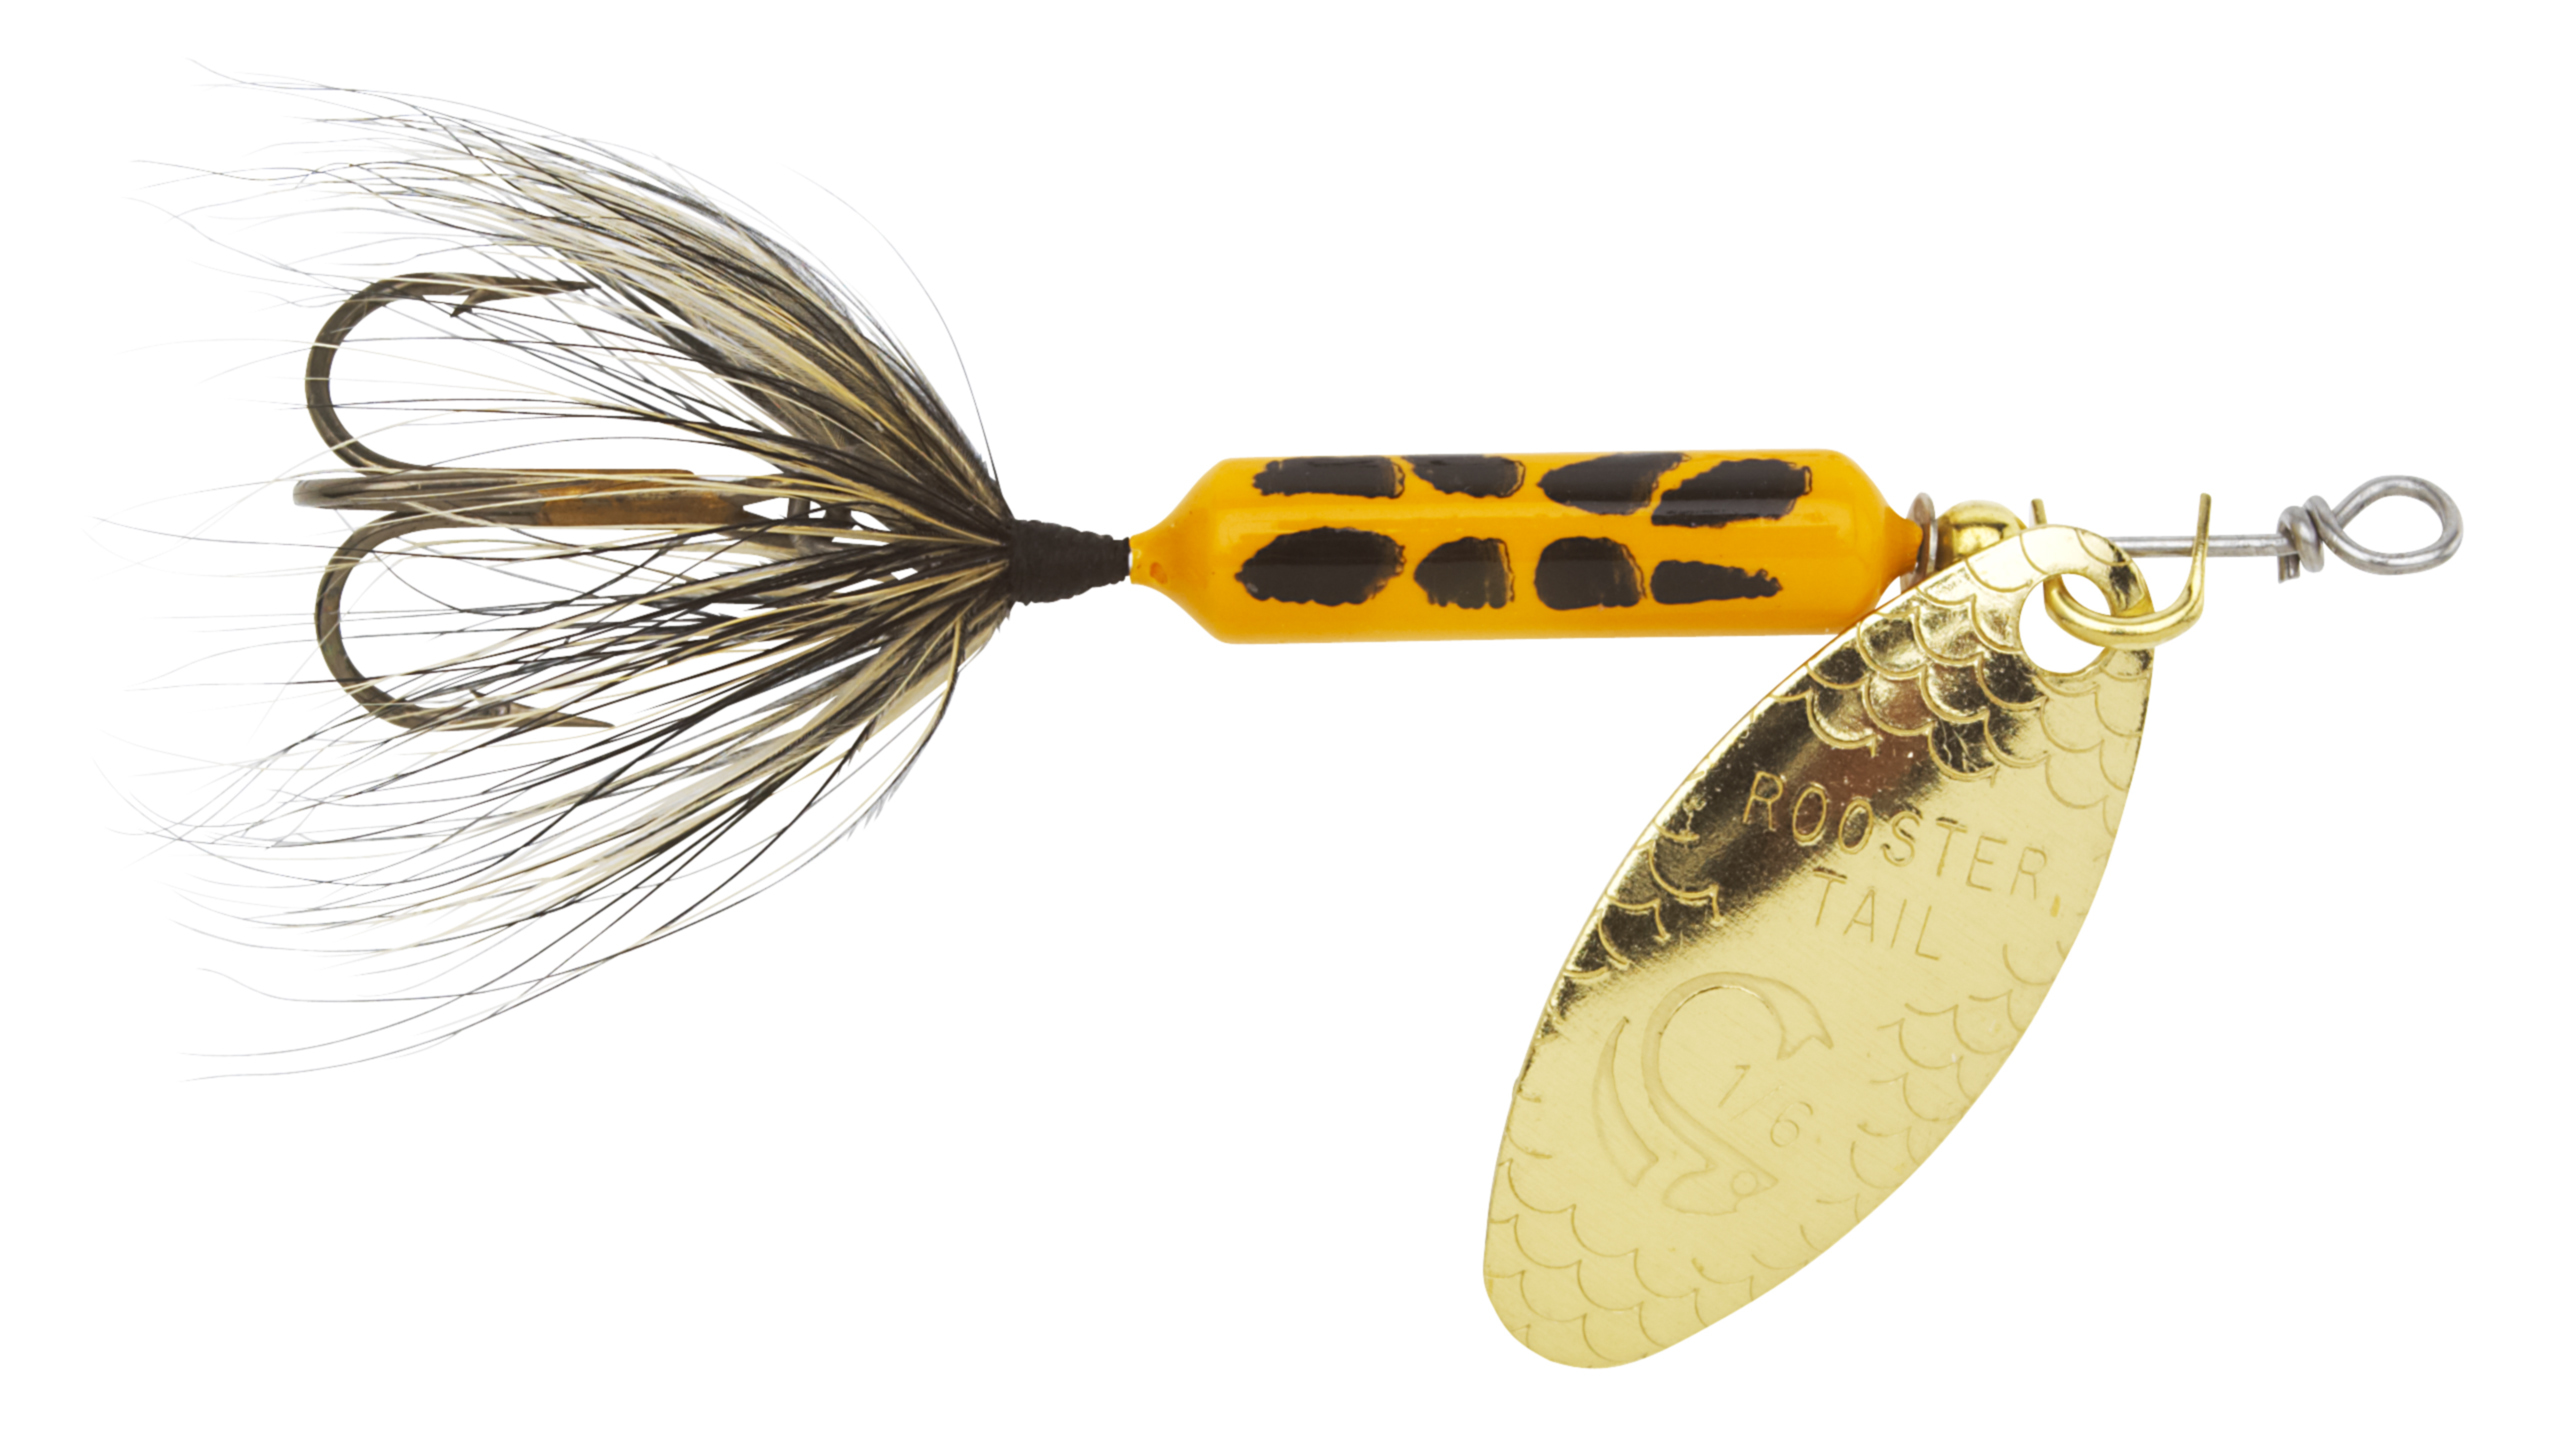 Wordens 208-YLCD Rooster Tail In-Line Spinner, 2 1/4